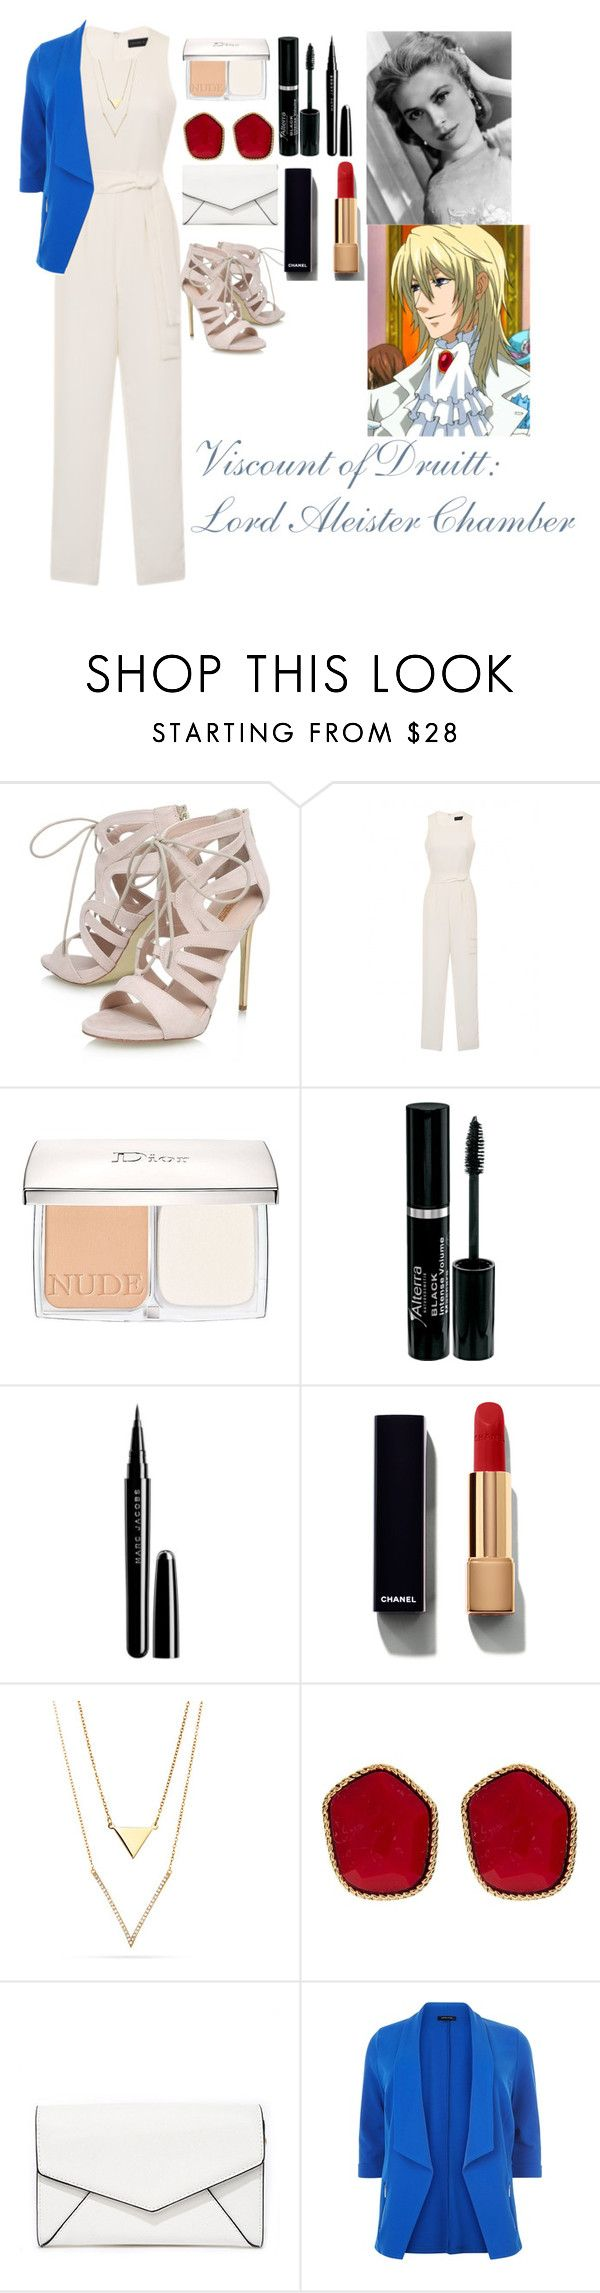 """Viscount of Druitt: Lord Aleister Chamber"" by charbear231 ❤ liked on Polyvore featuring Carvela, Lavish Alice, Christian Dior, Marc Jacobs, Chanel, Diane Von Furstenberg, LULUS and New Look"